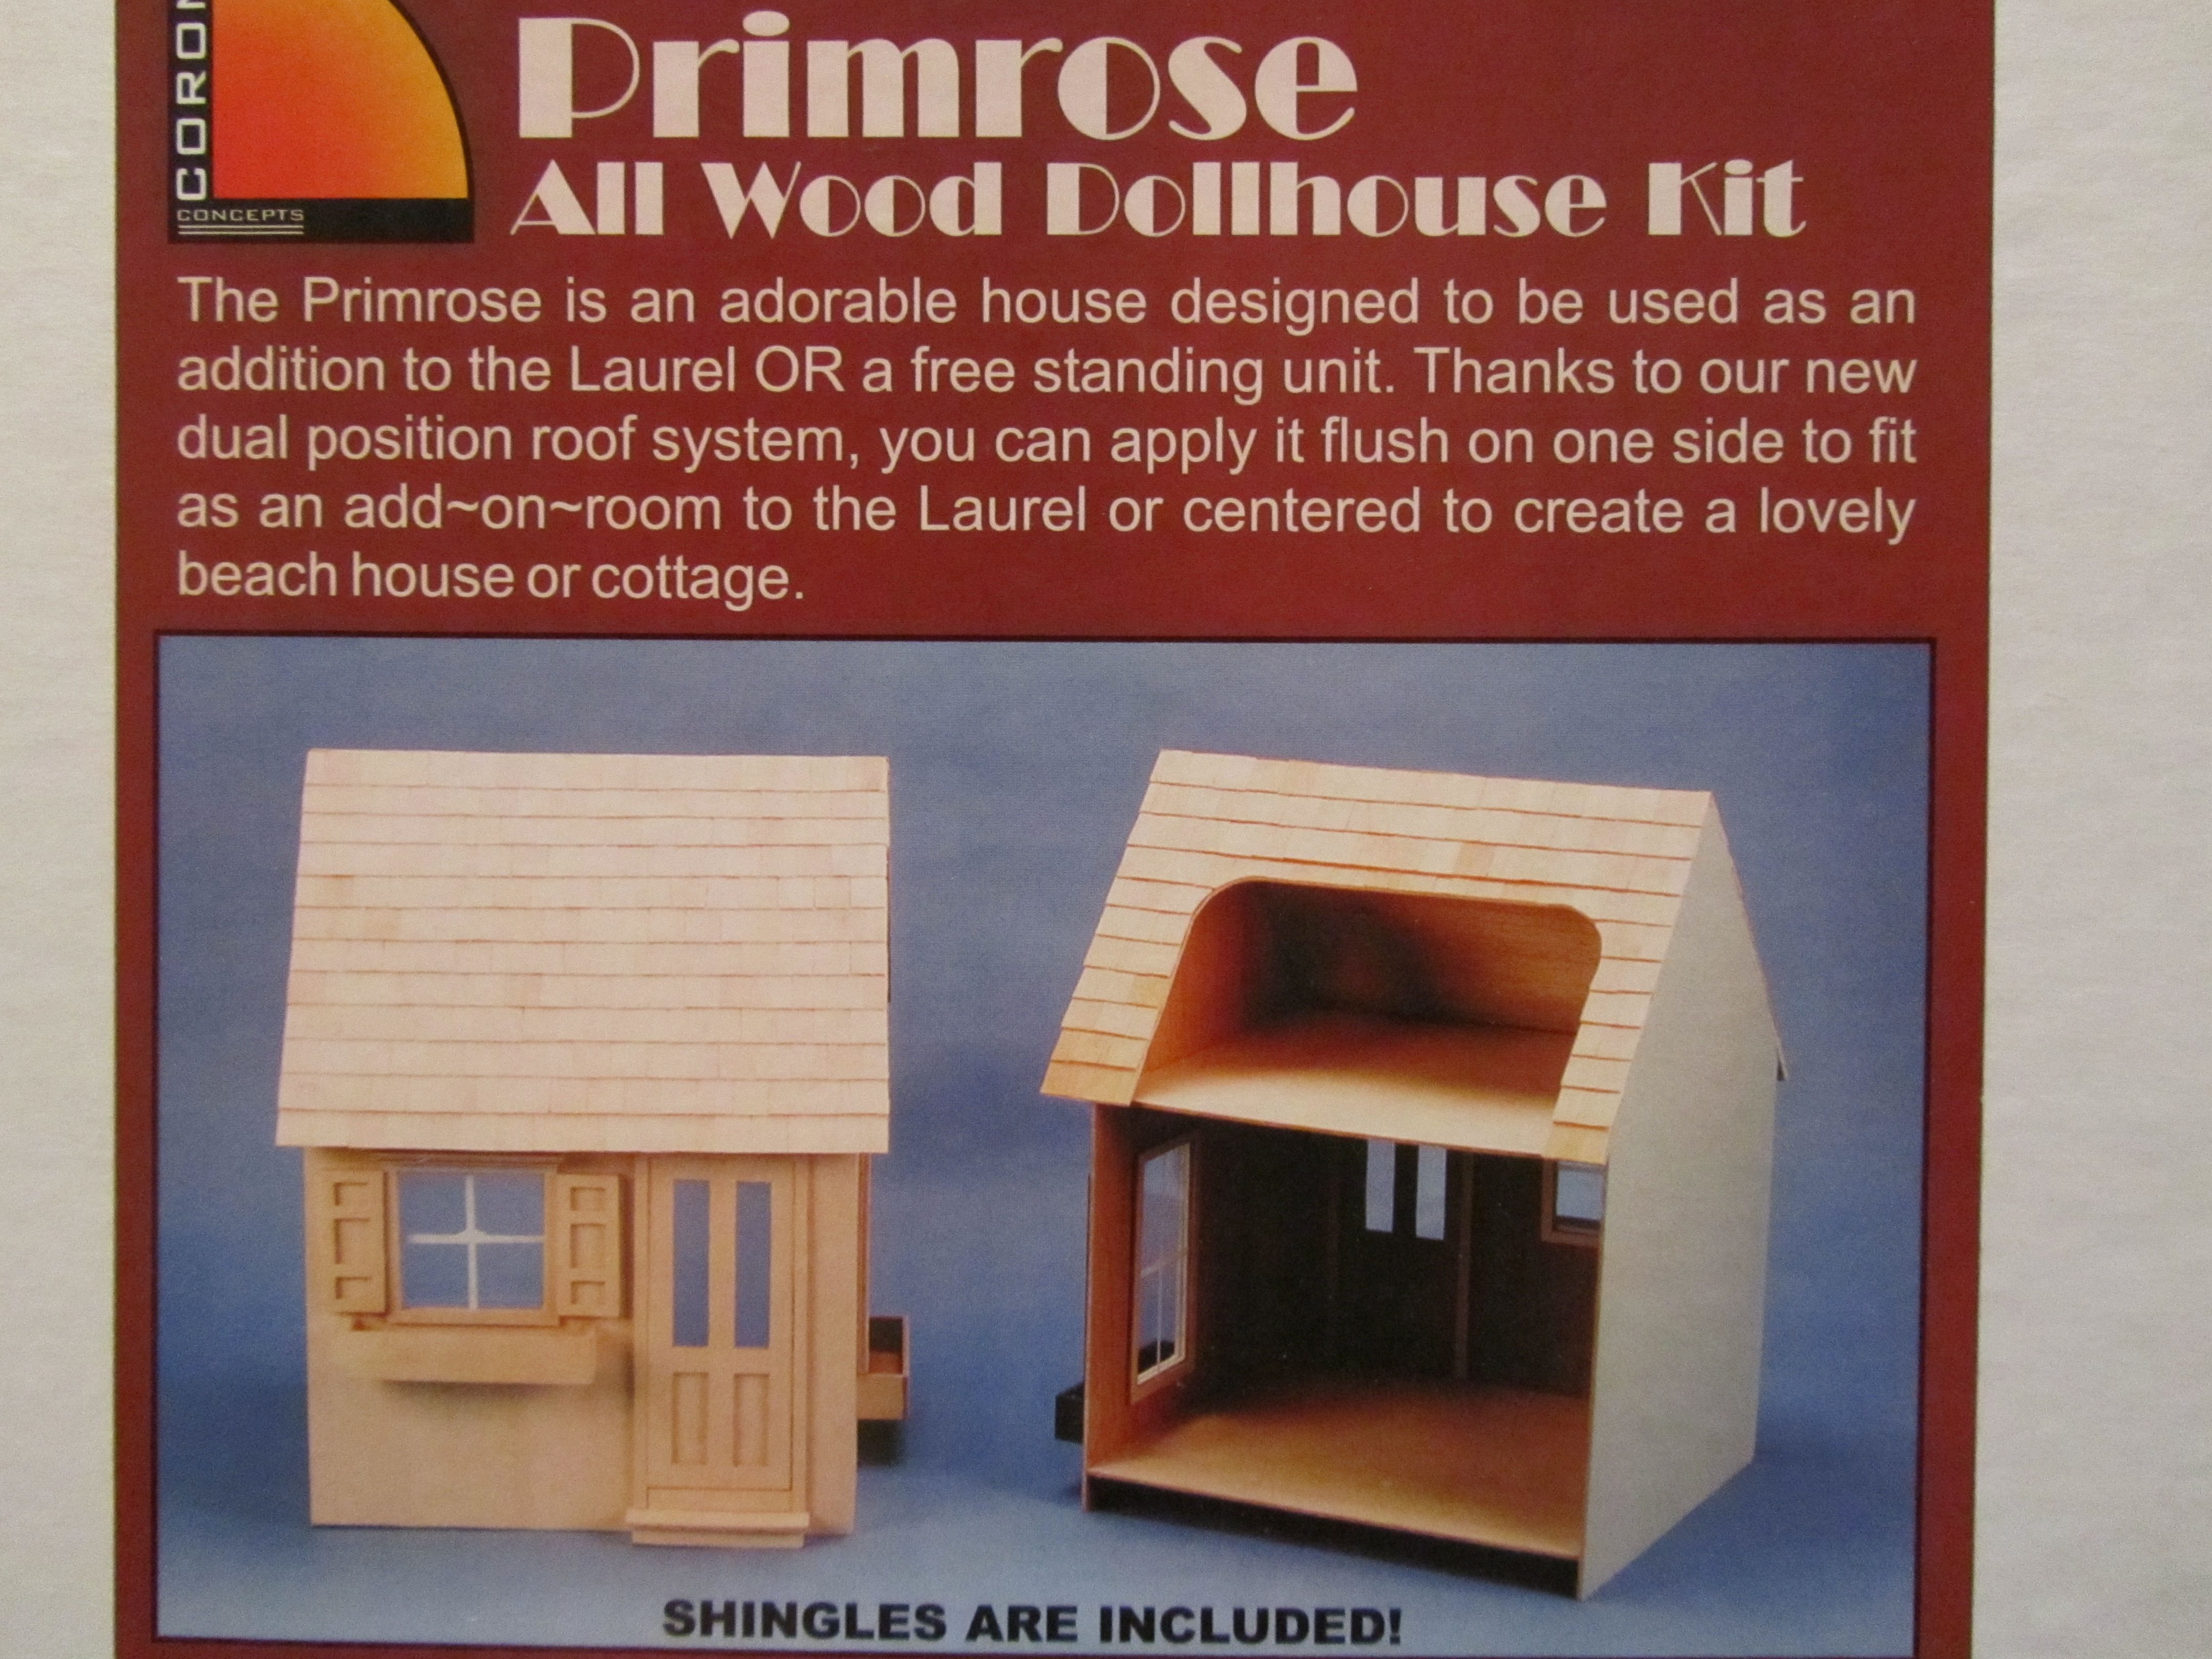 Greenleaf Corona Concepts The Primrose Dollhouse Kits House Design Roofing Systems